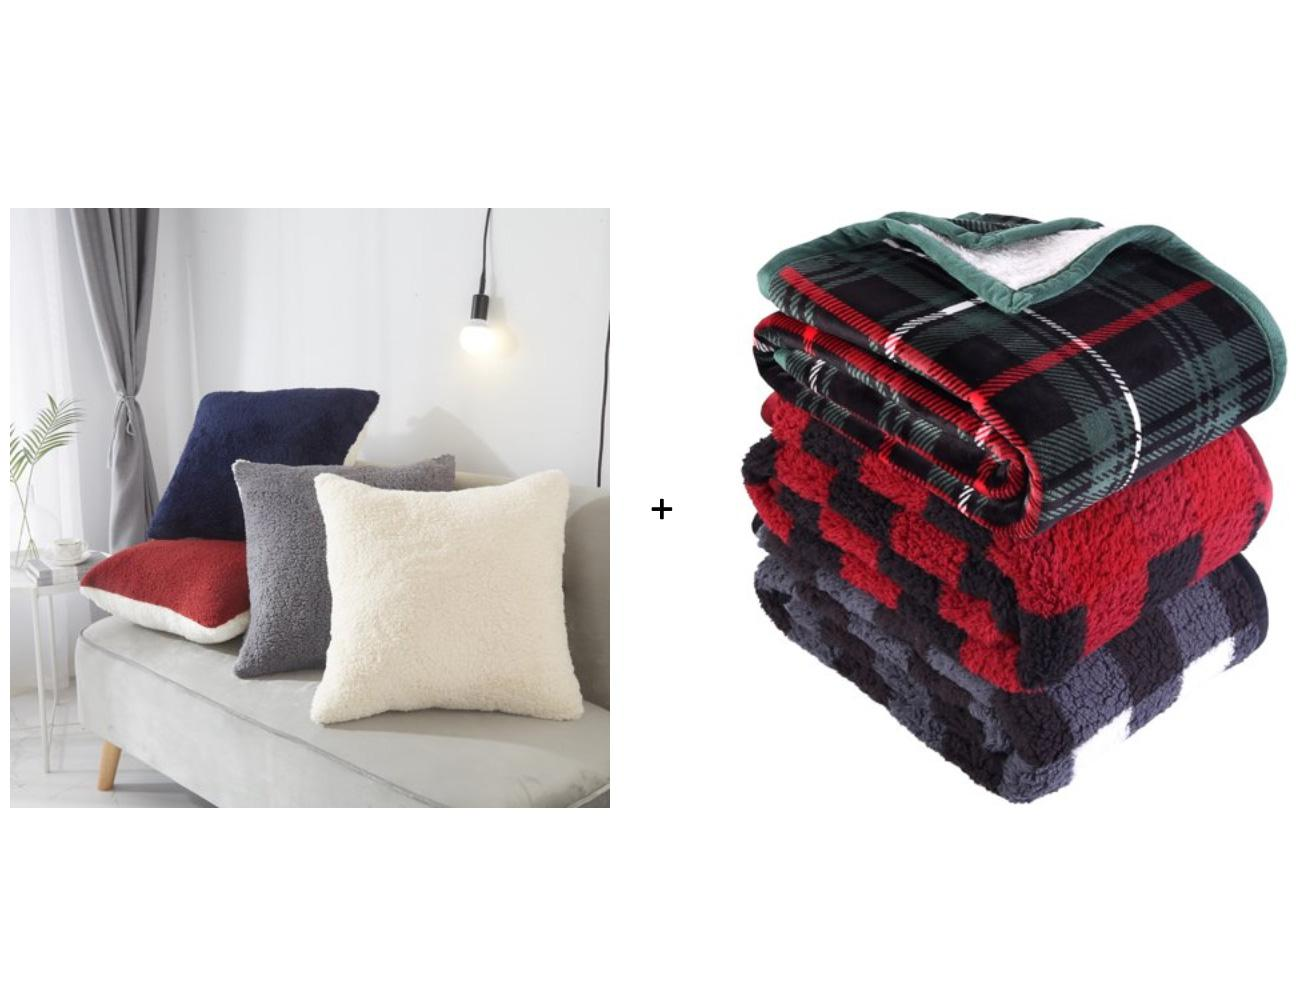 Sherpa Throw Blanket and Pillow for $12